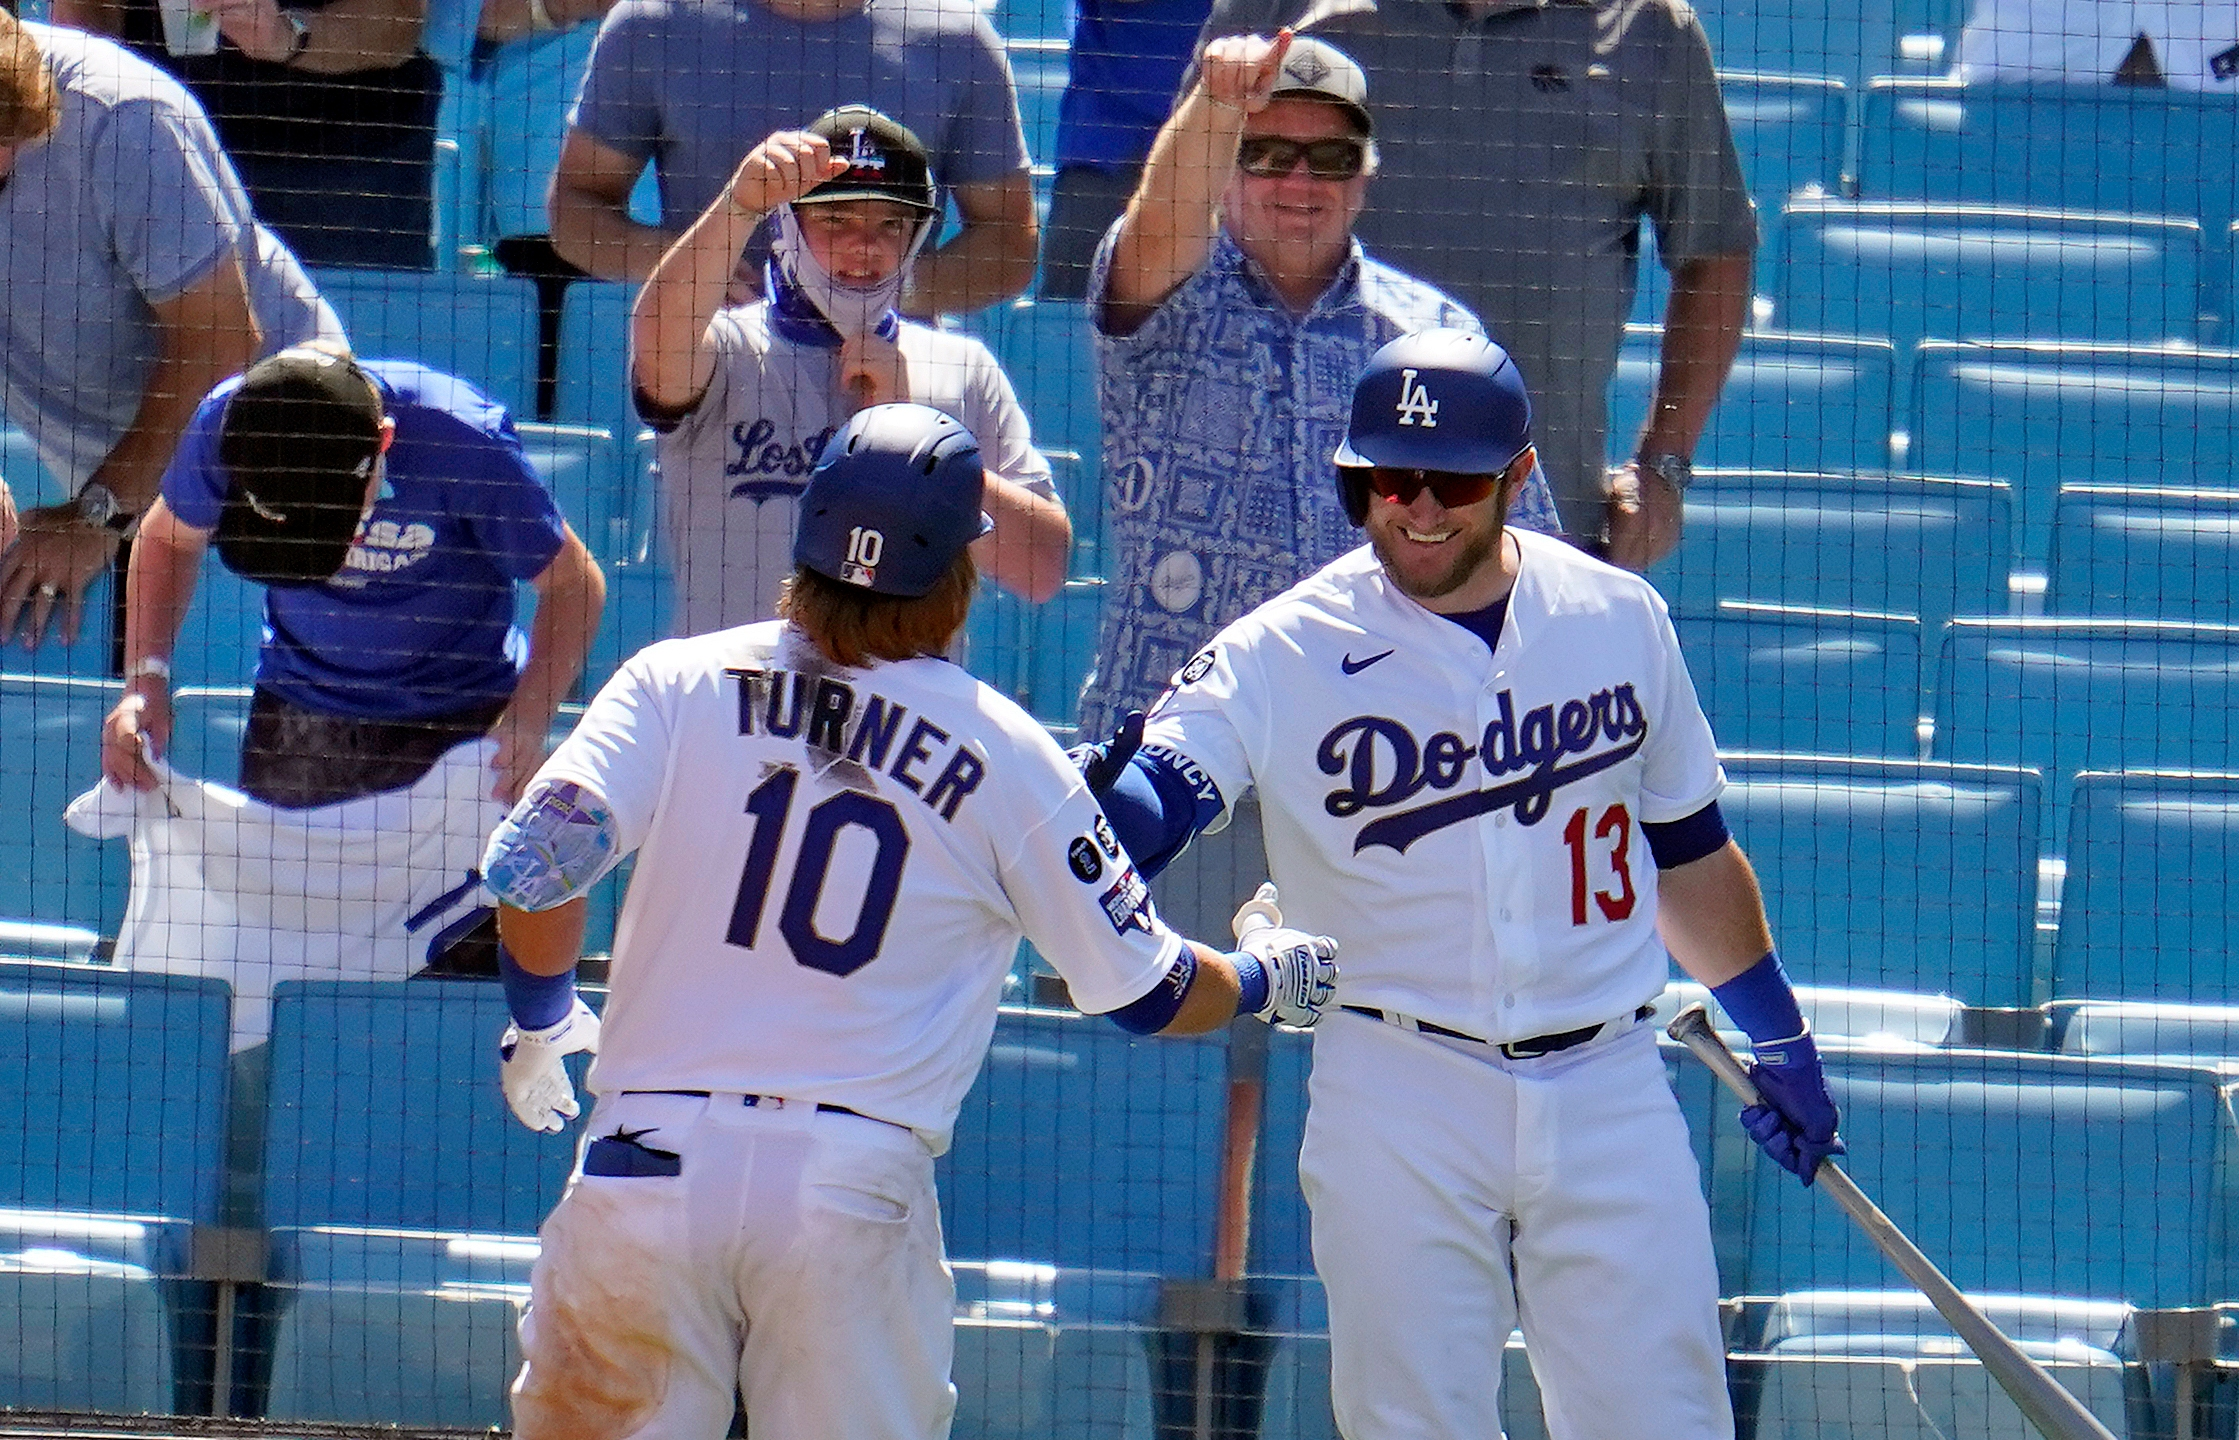 Justin Turner, Max Muncy